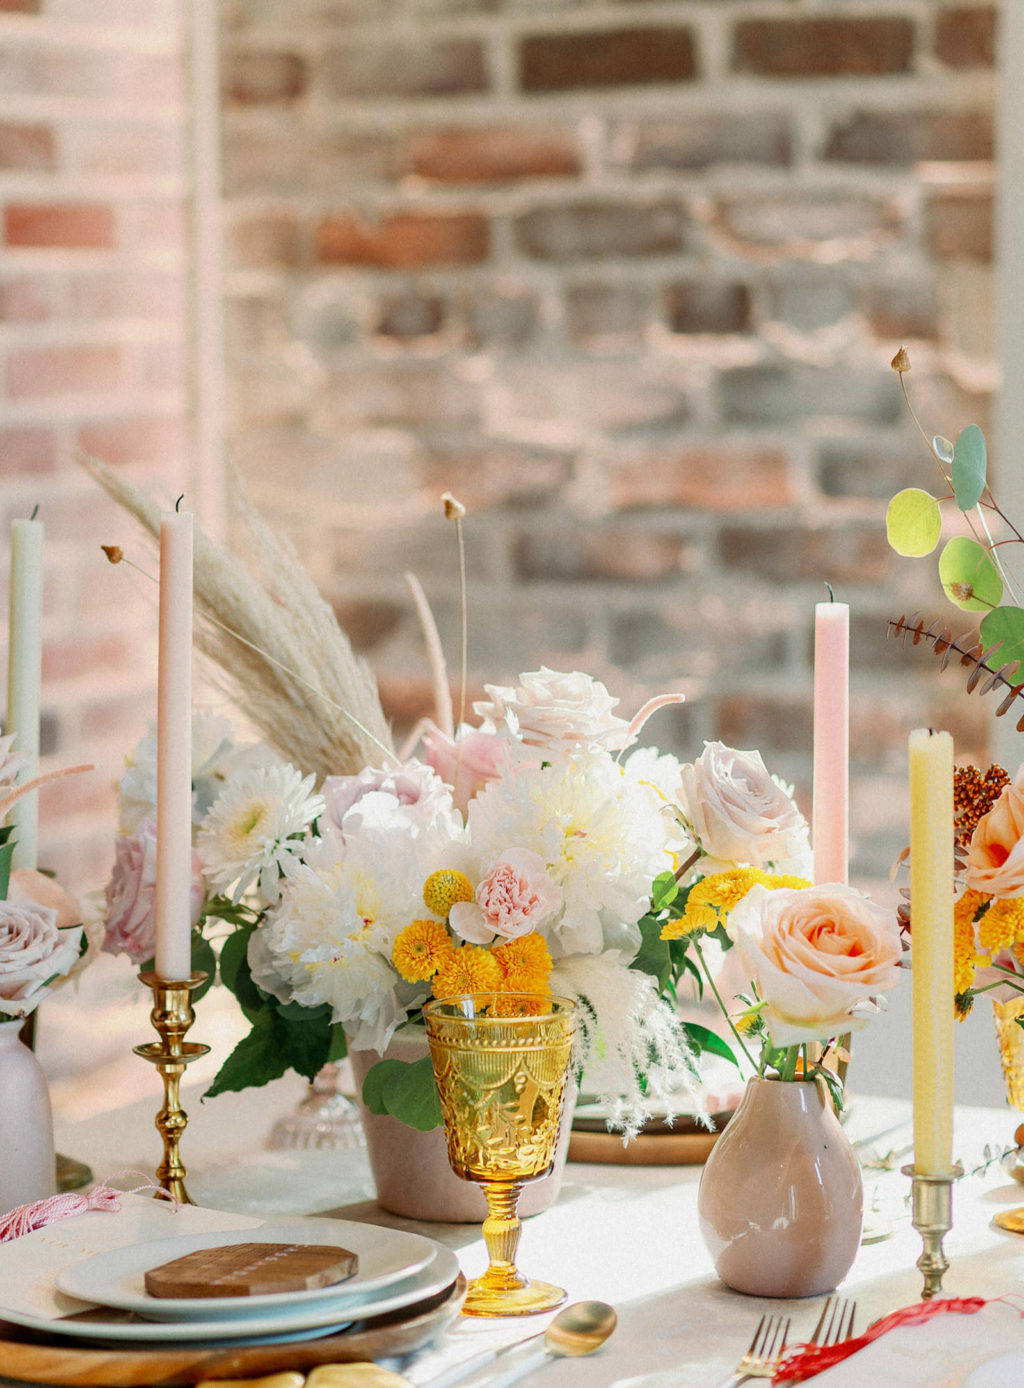 Whimsical Wedding Reception Decor, White Low Floral Centerpiece with Blush Pink Roses, Pampas Grass, Pink and Yellow Tall Candlesticks, Vintage Yellow Glassware   Tampa Bay Wedding Photographer Dewitt for Love   Linen Rentals Kate Ryan Event Rentals